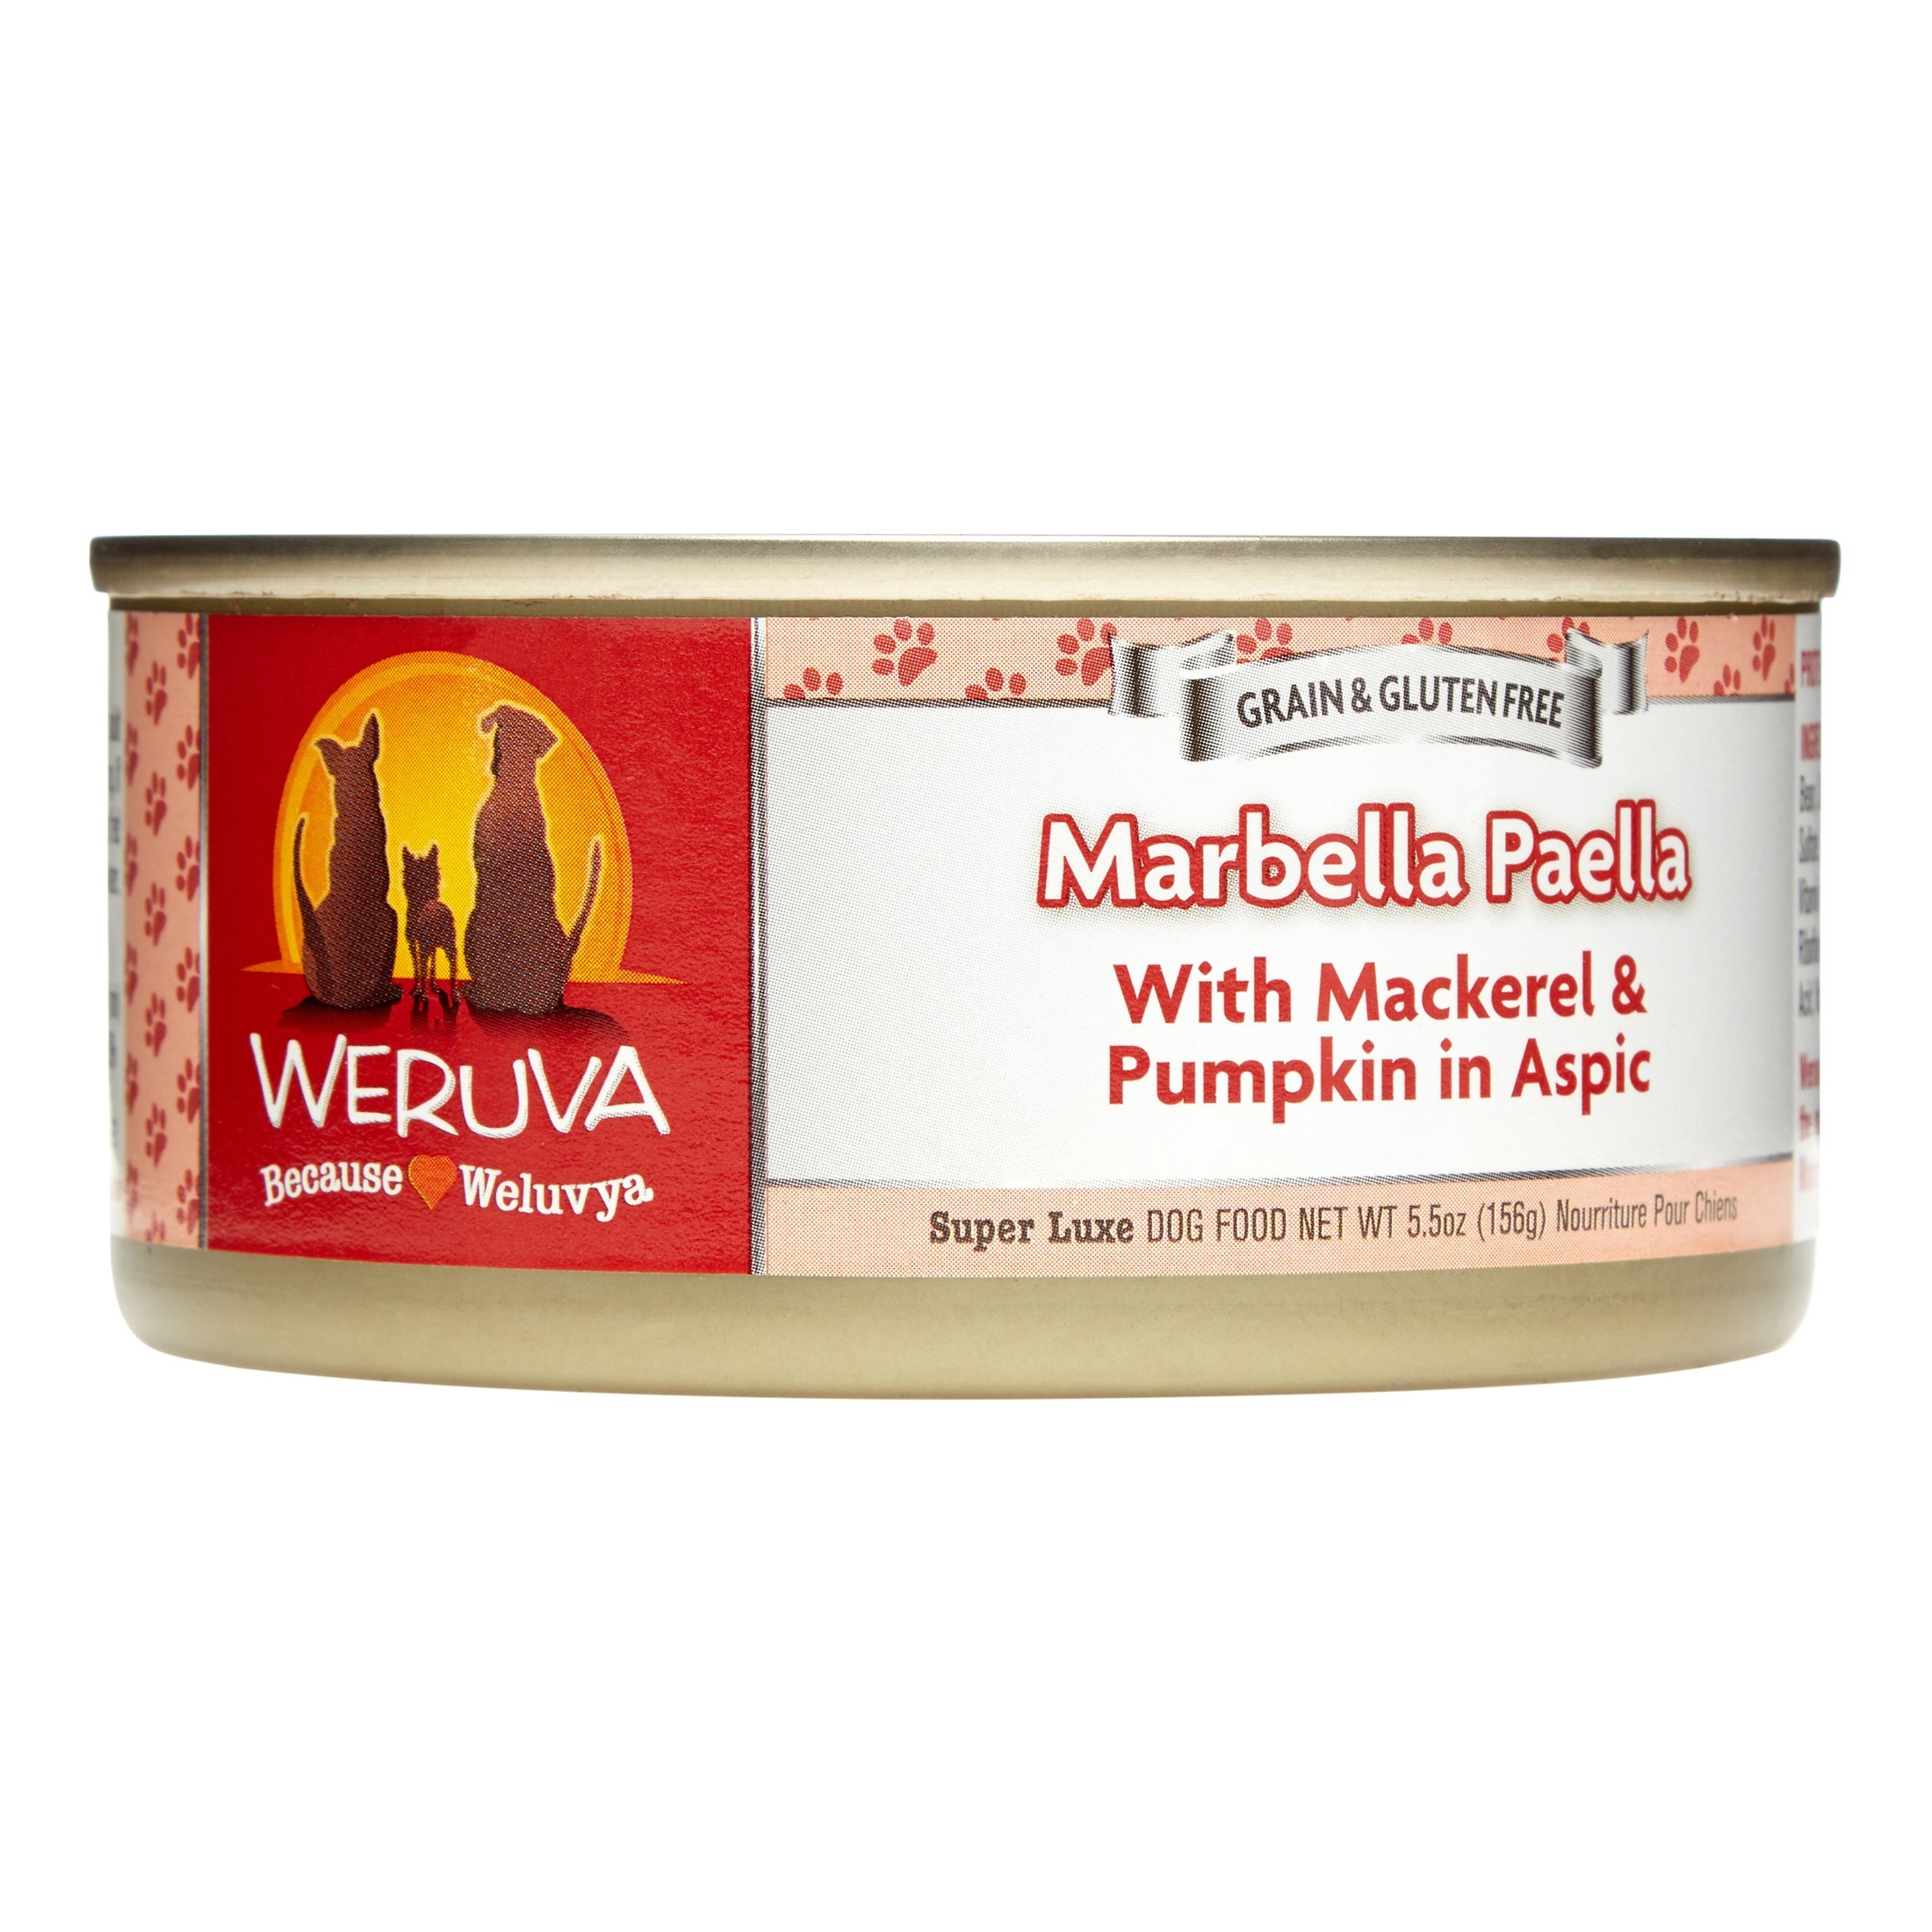 Weruva Grain-Free Marbella Paella with Mackerel & Pumpkin Wet Cat Food, 14 Oz